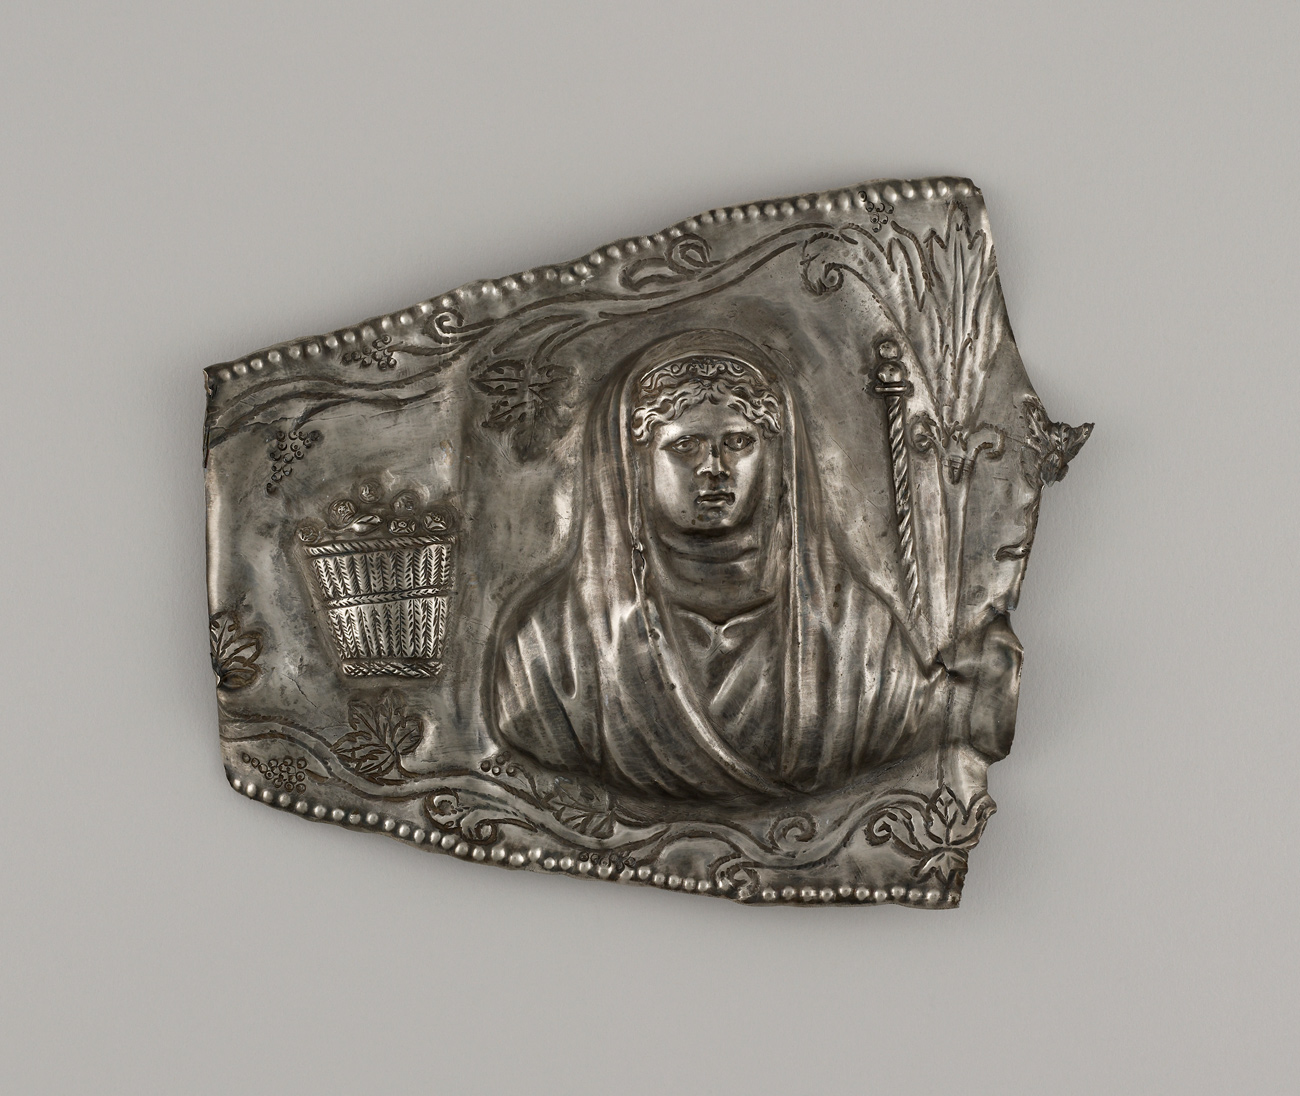 A silver piece with the image of a woman.